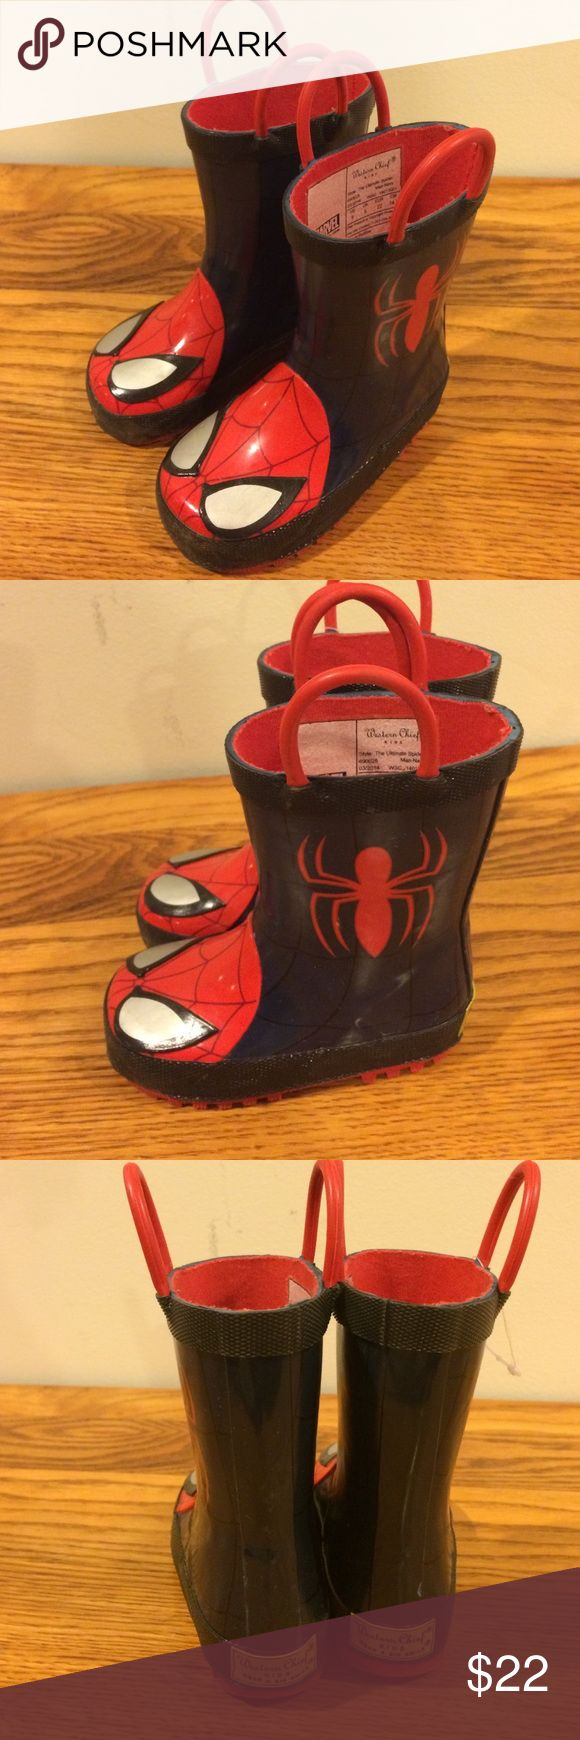 Western Chief Spider-Man rain boots size 6 Western Chief Spider-Man rain boots size 6 .  Gently used Spider-Man rain boots.  Pull on handles. Western Chief Shoes Rain & Snow Boots